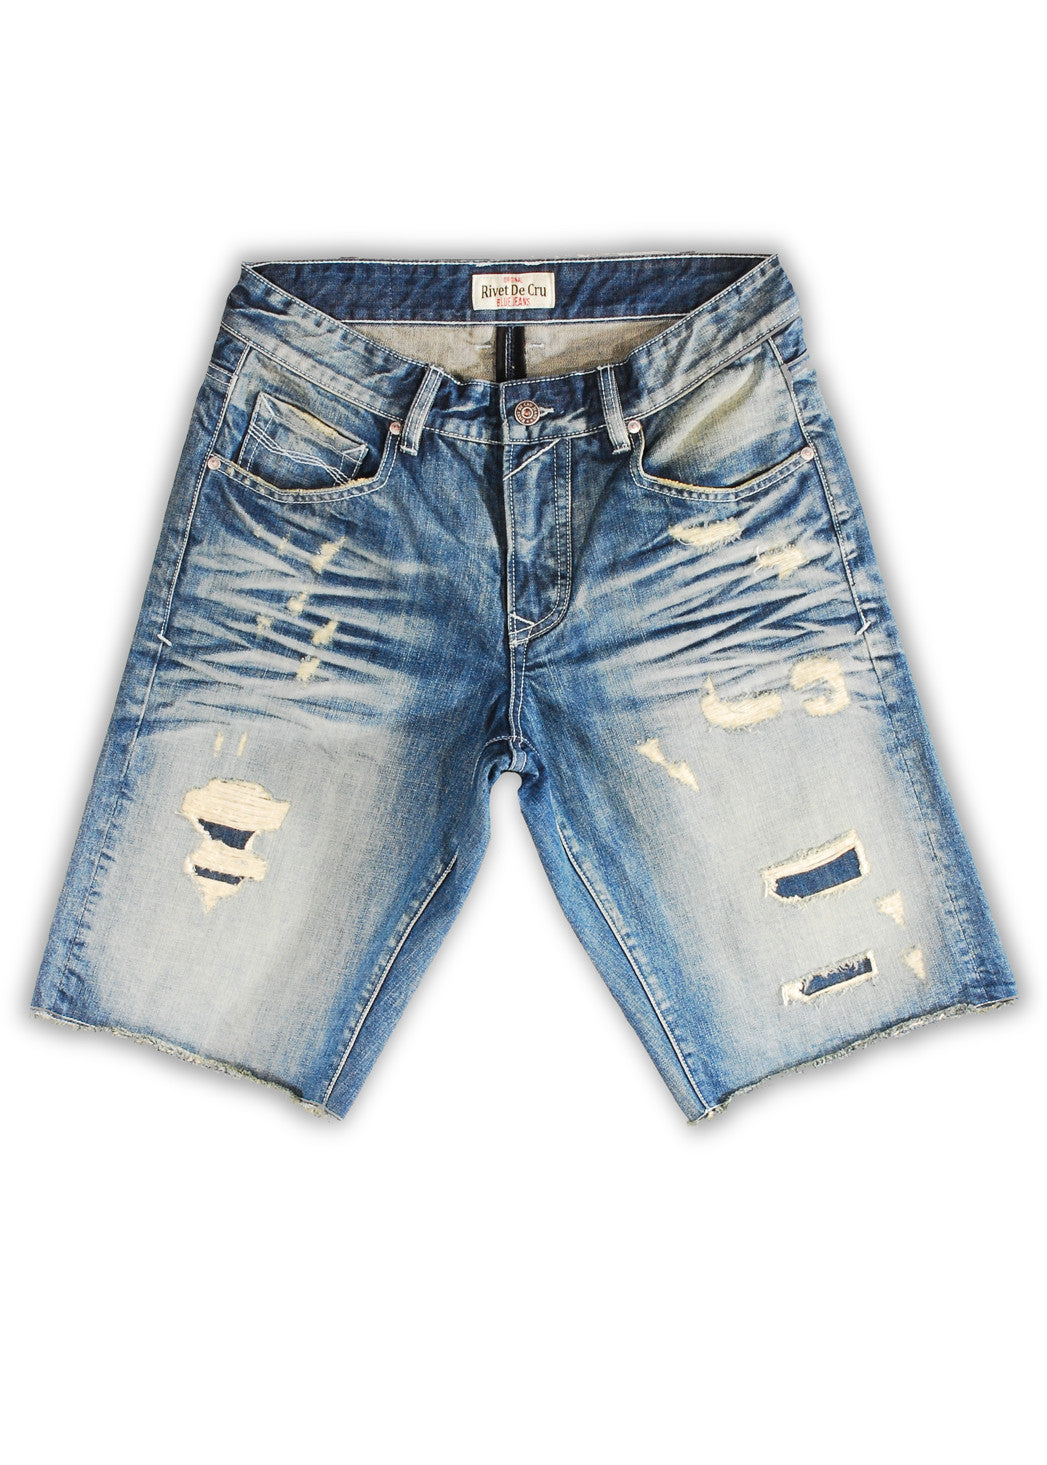 1TS-004 Salmon Dream Shorts - Rivet De Cru Jeans - Premium Denim